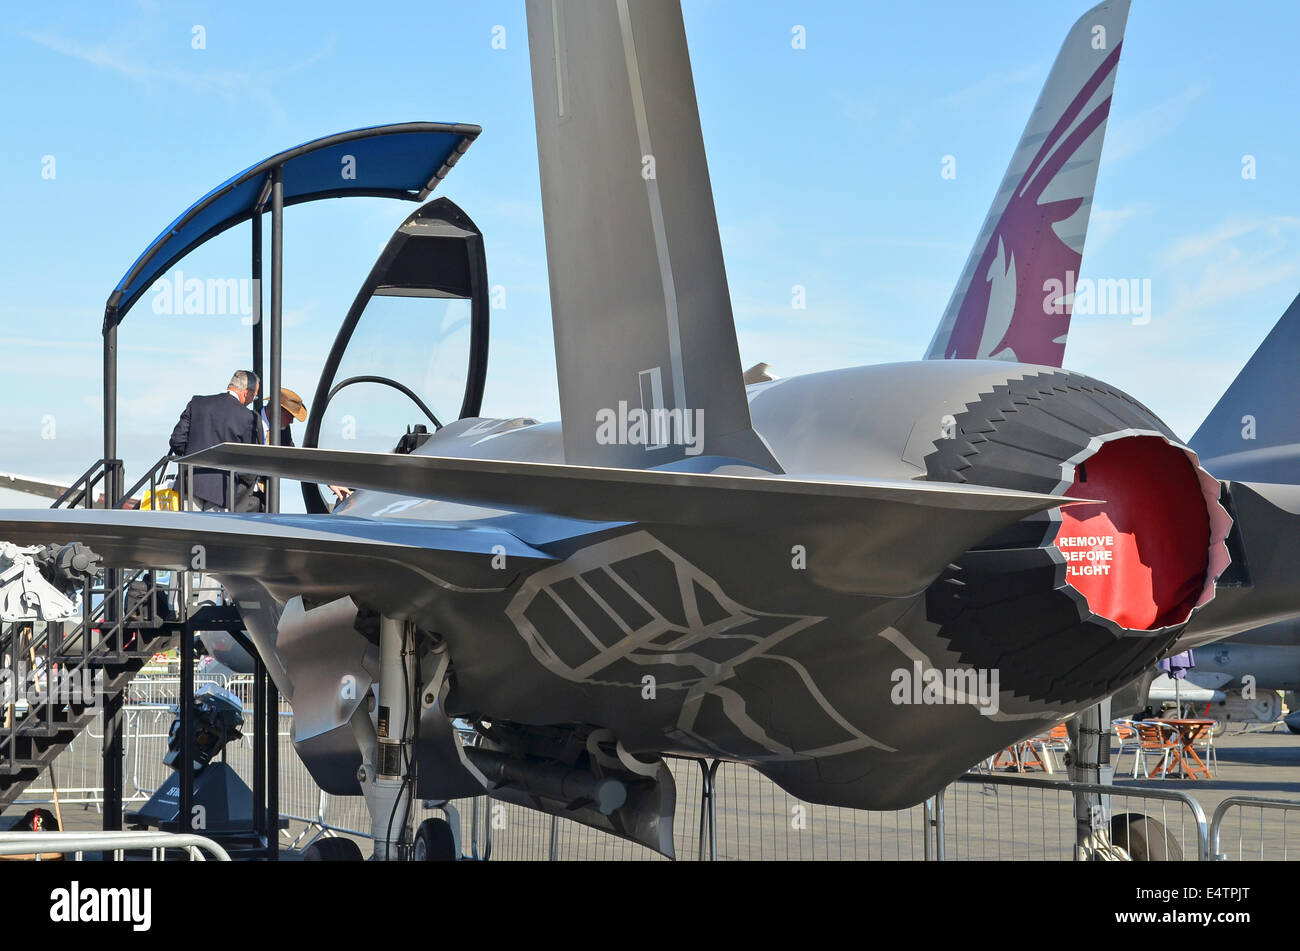 Farnborough, Hampshire, UK. 16th July, 2014. Visitors to the 2014 Farnborough Airshow were disappointed to find Stock Photo